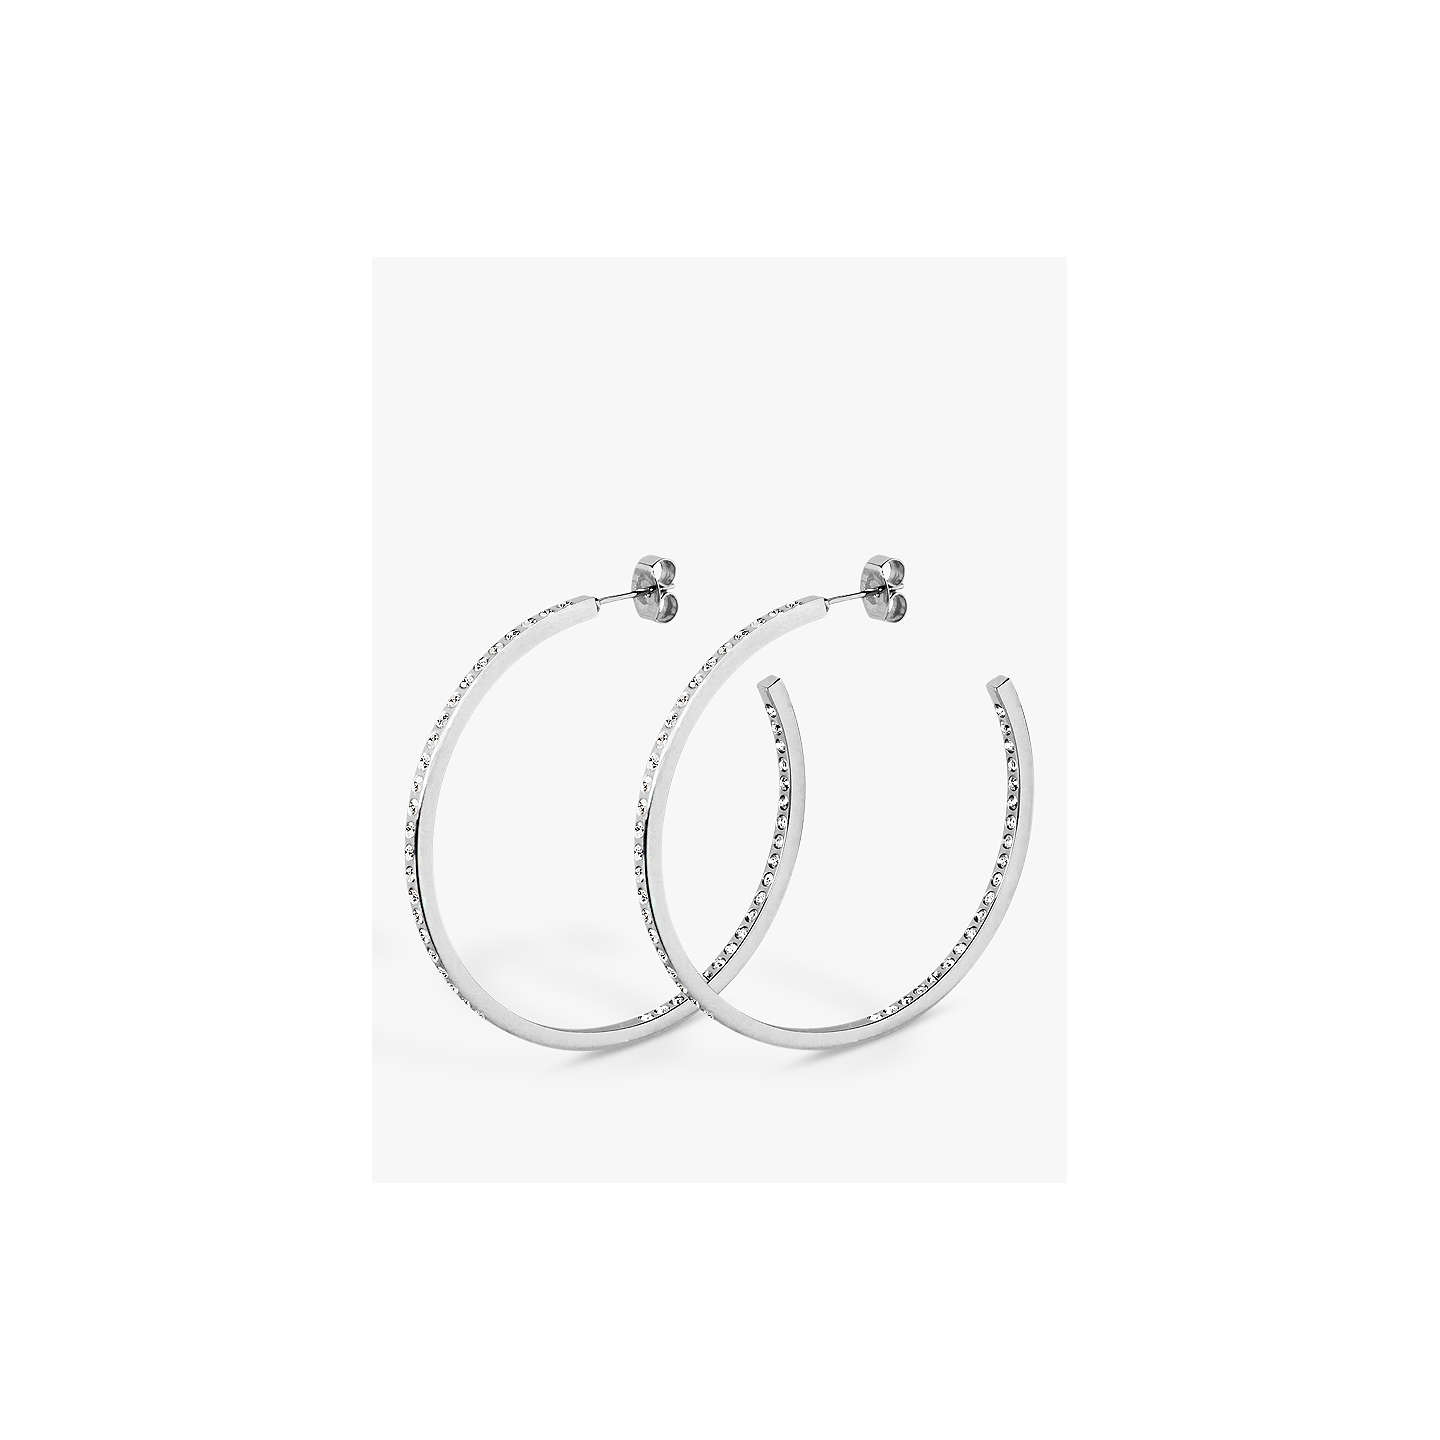 BuyDYRBERG/KERN Crystal Hoop Earrings, Silver Online at johnlewis.com